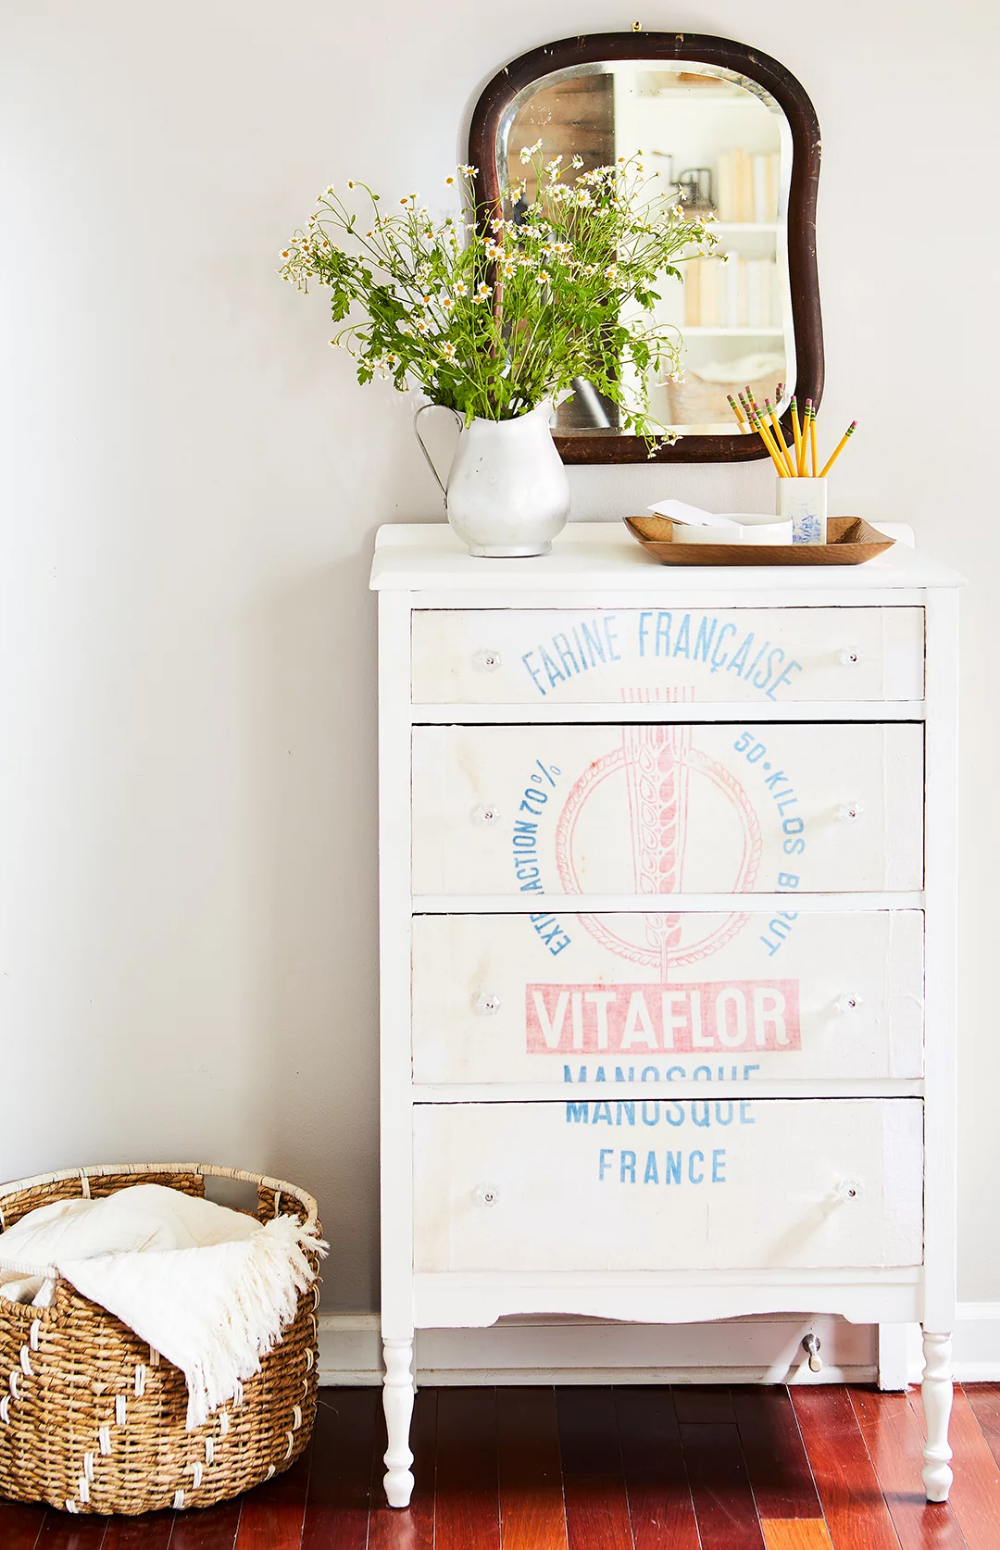 48 Amazing Flea Market Projects, Hacks, and Revamps